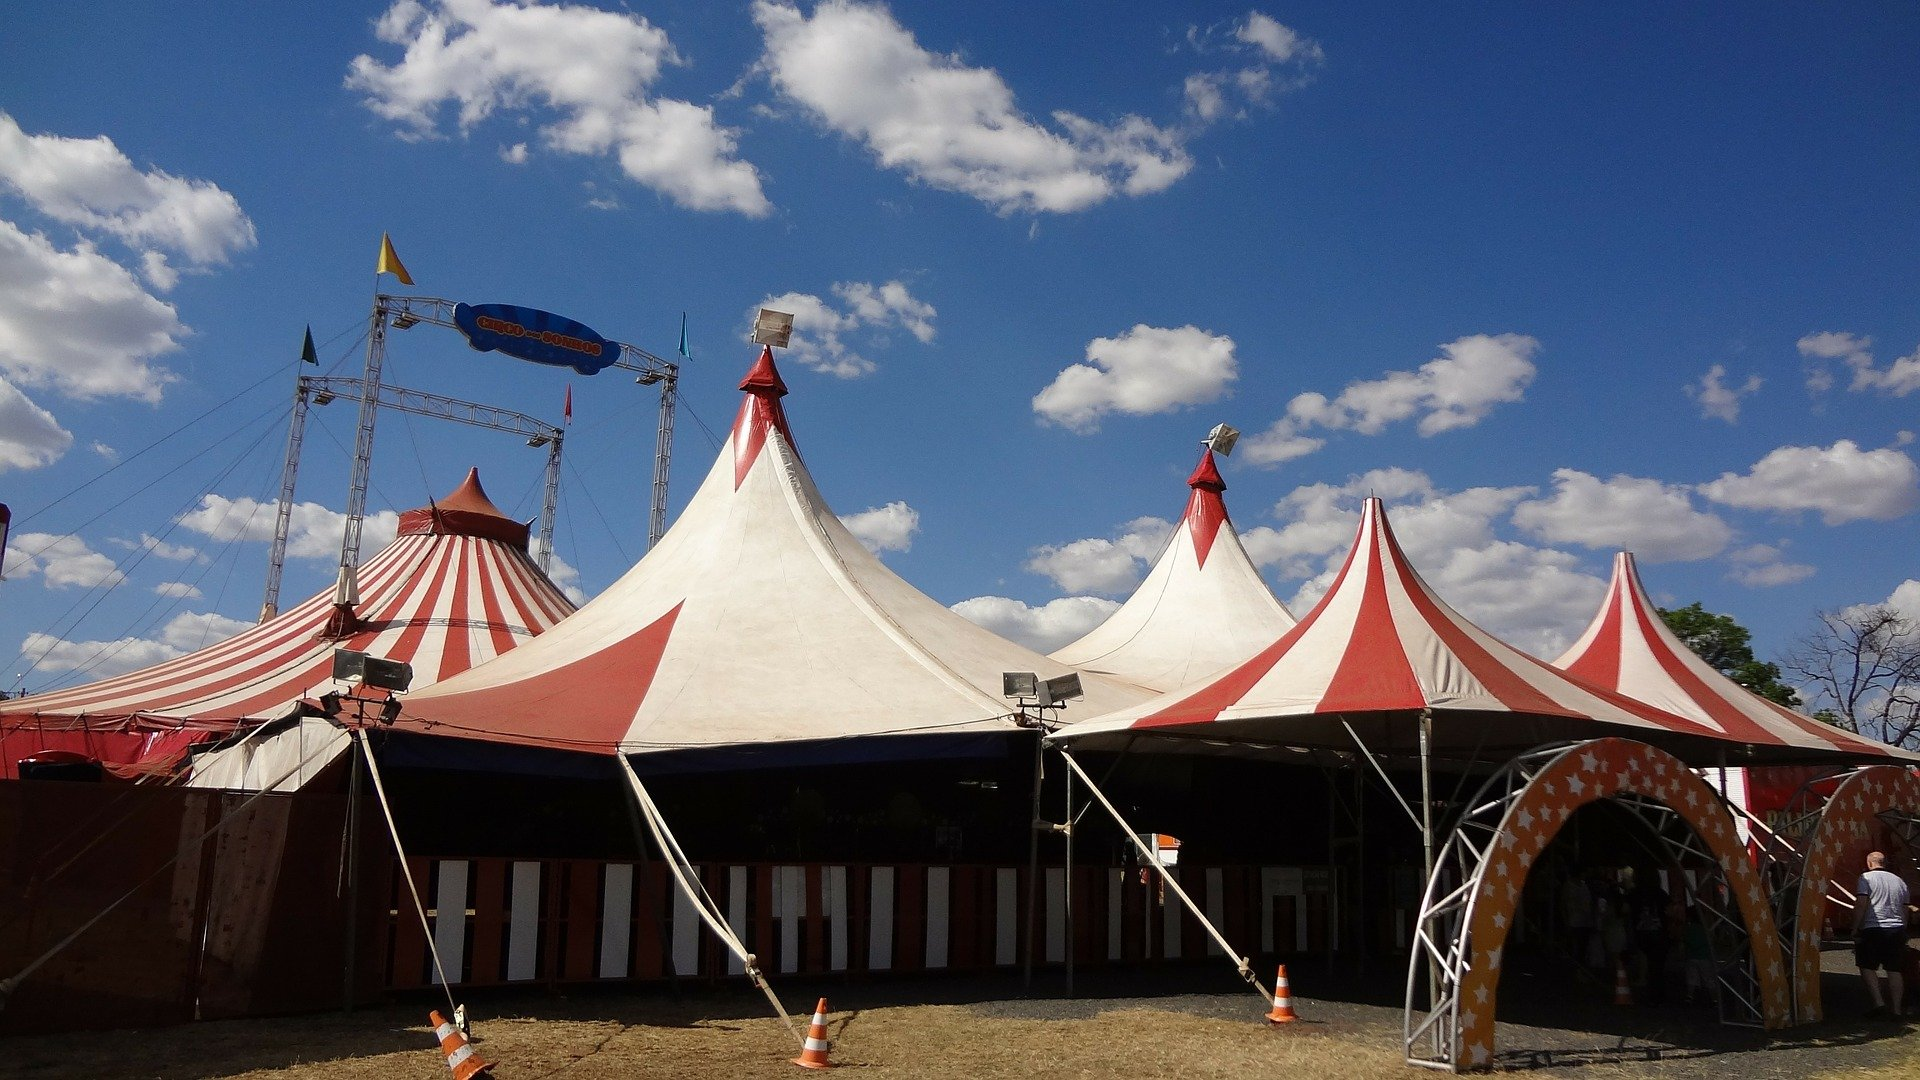 A big red-and-white circus tent pitched in an open area | Photo: Pixabay/Claudio Kirner